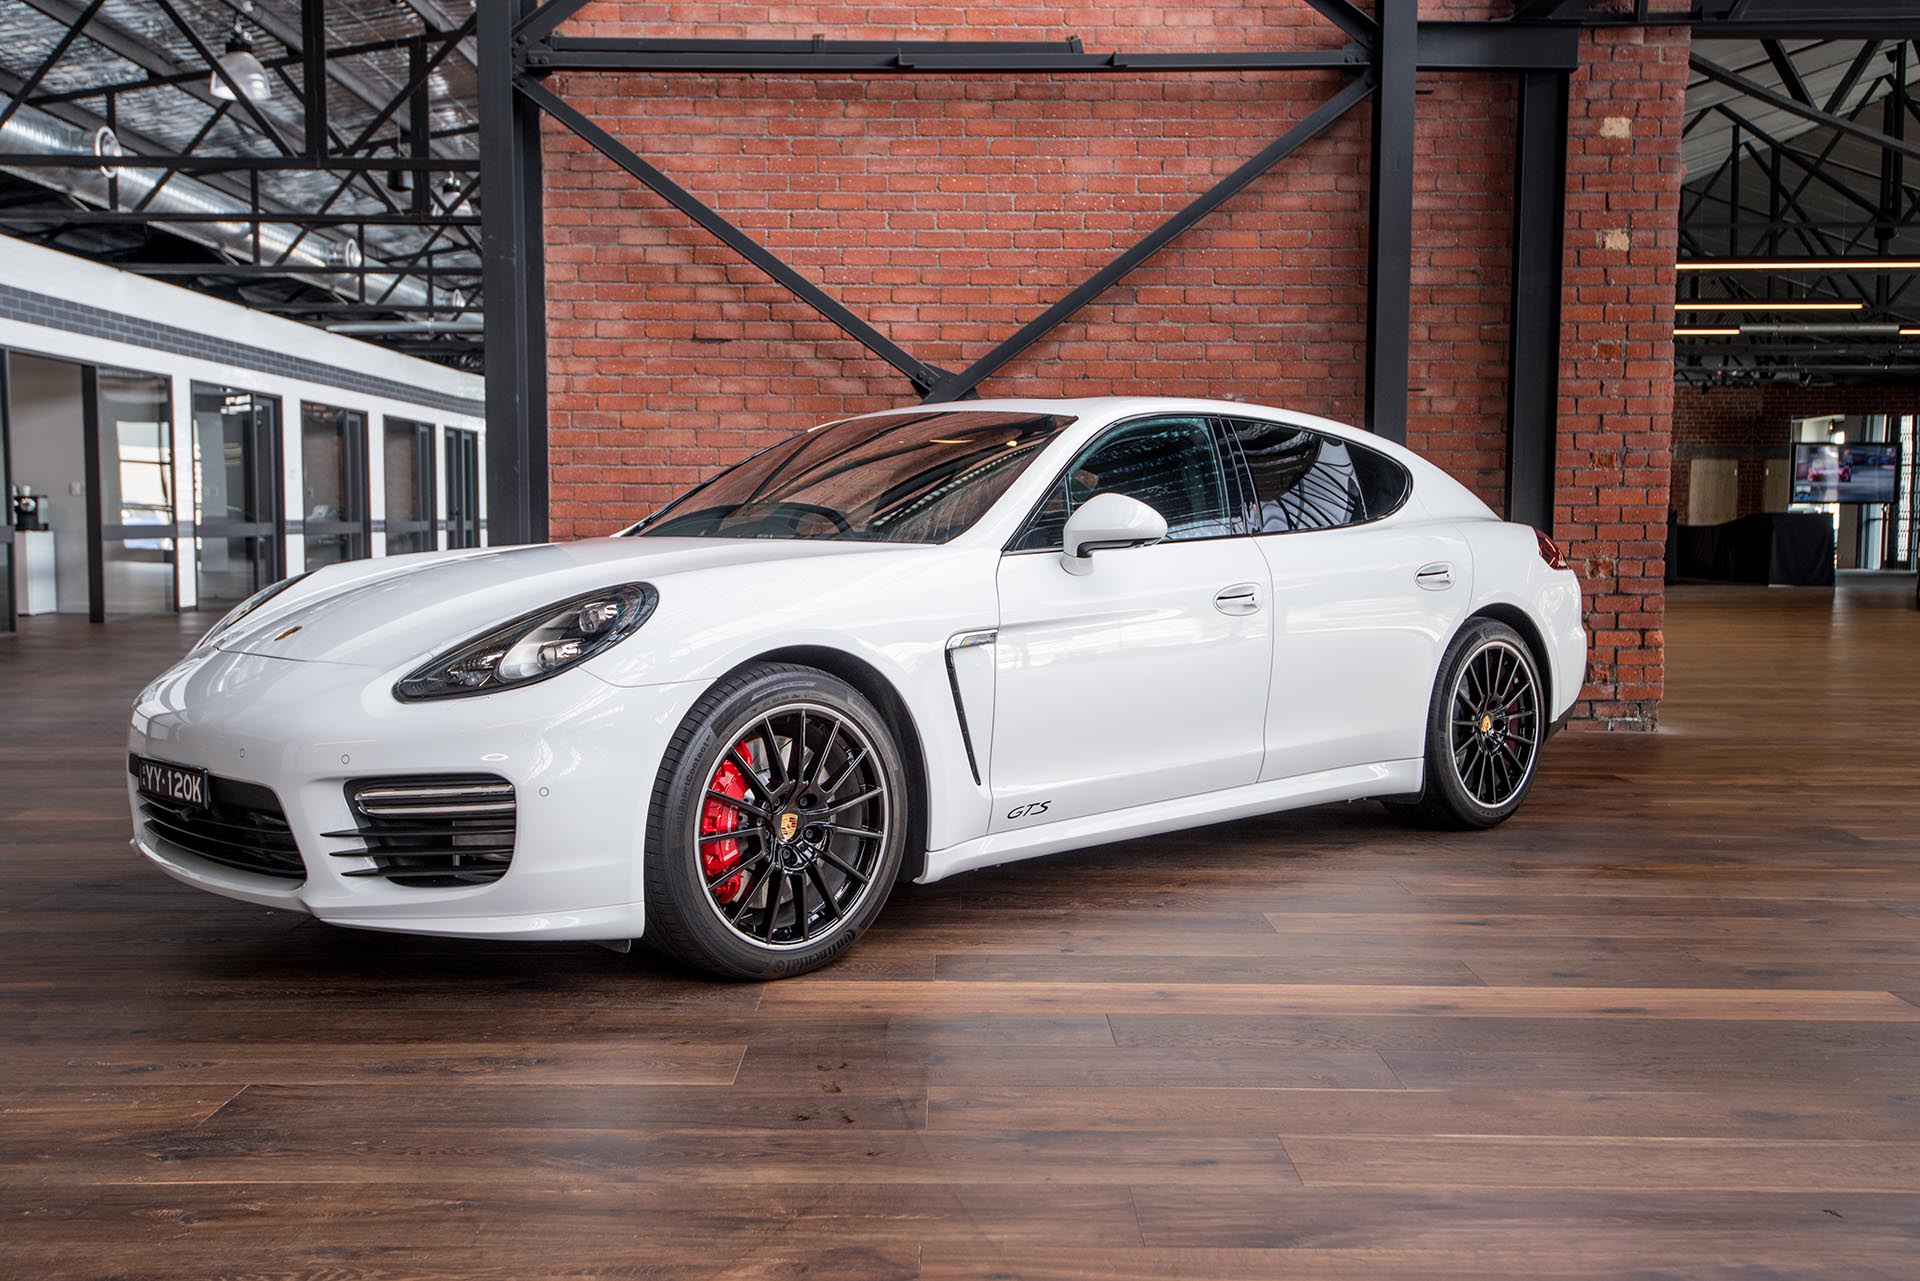 2016 Porsche Panamera Gts >> 2016 Porsche Panamera GTS - Richmonds - Classic and ...